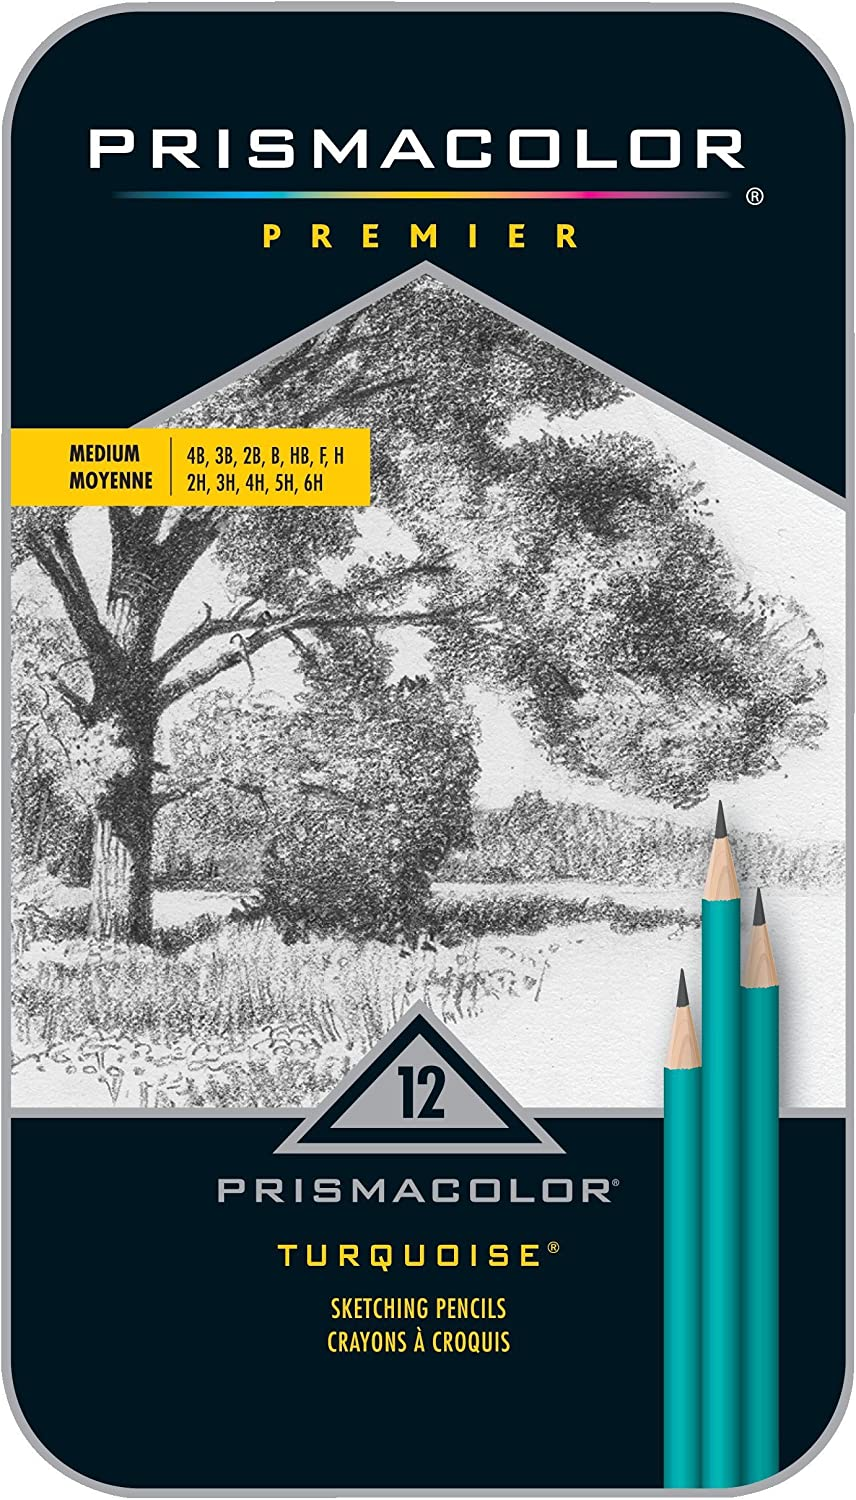 Medium Drawing Pencils 24192 Assorted Leads Box of 12 PRISMACOLOR TURQUOISE Pencil